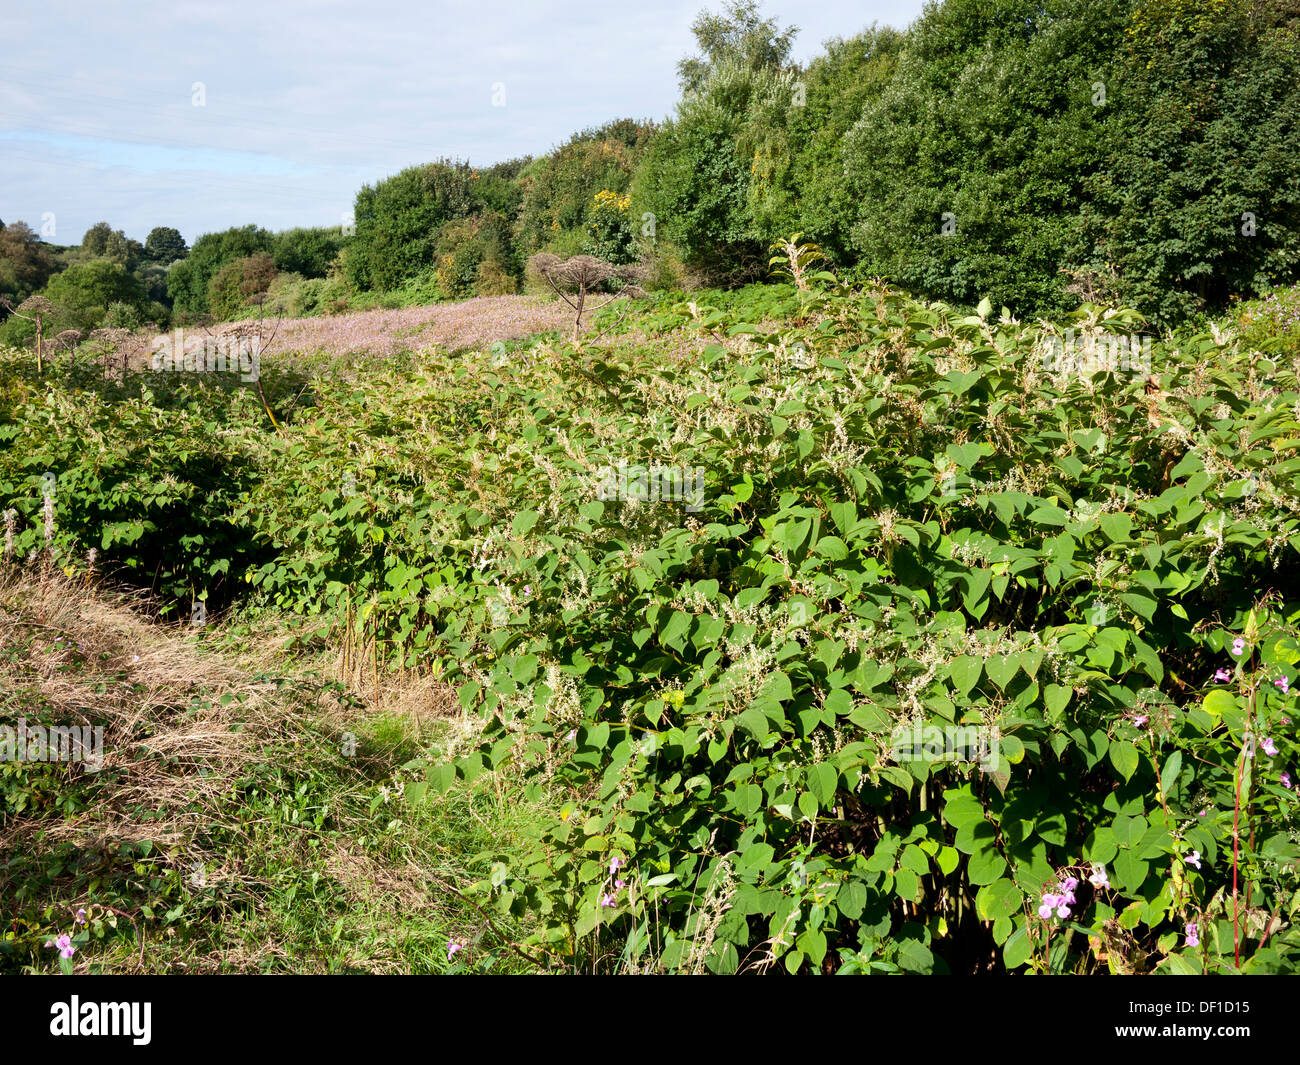 Japanese Knotweed (fallopia japonica) on the banks of the River Irwell Radcliffe,Greater Manchester,UK. - Stock Image